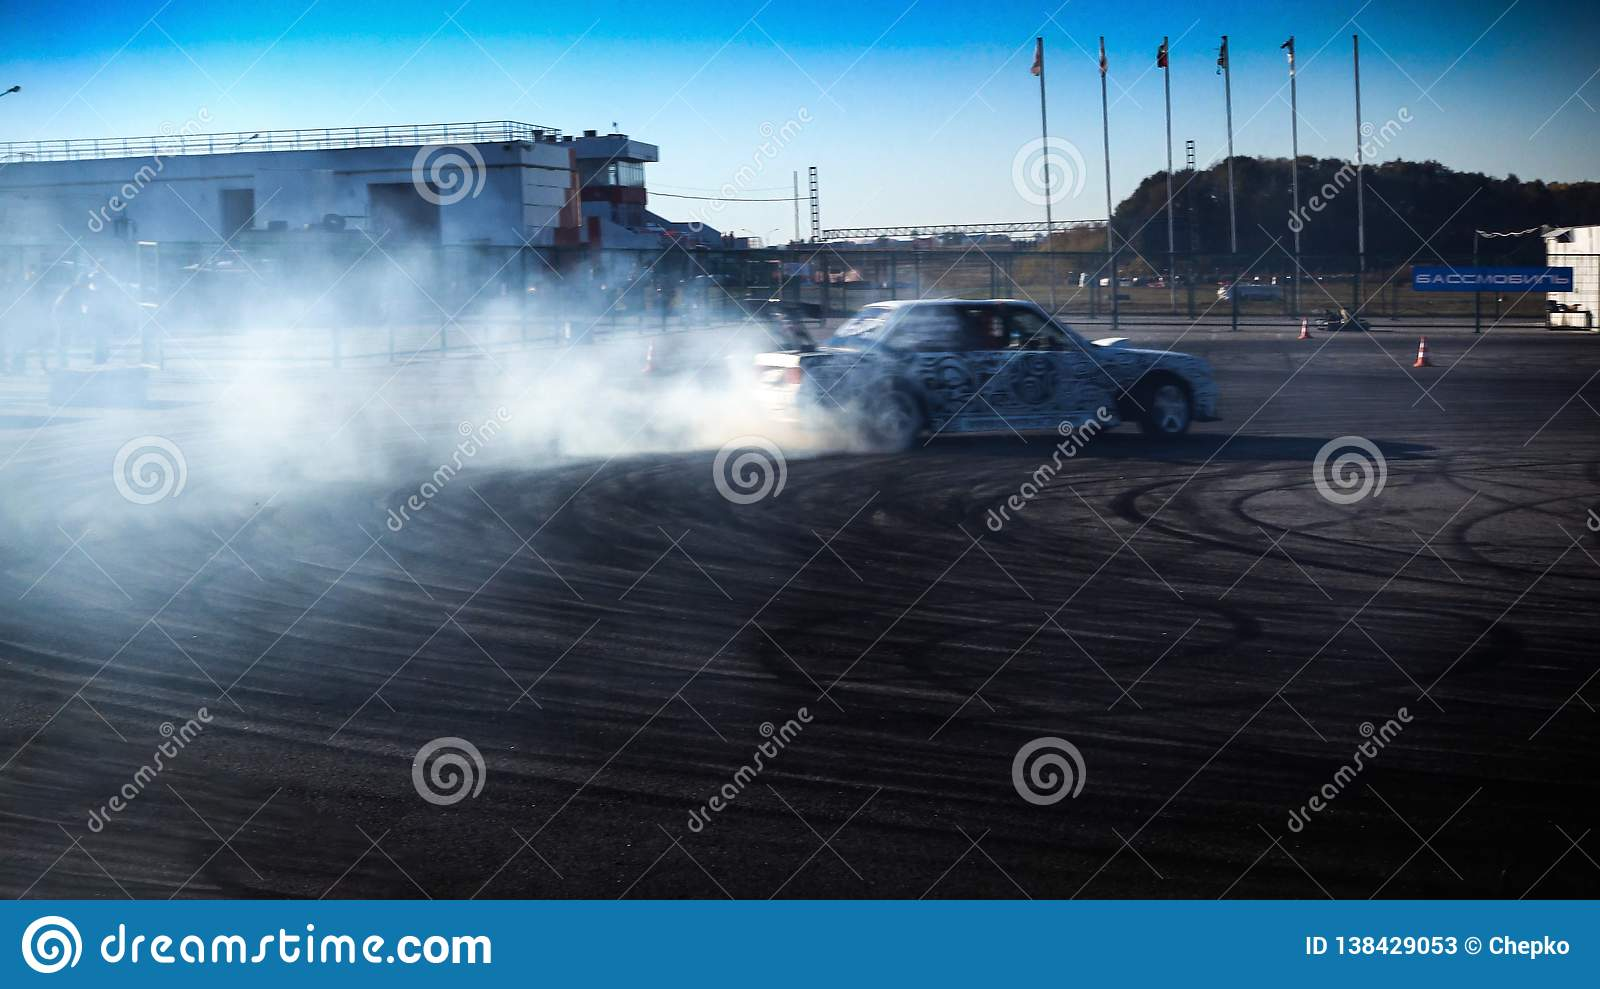 A drift racing car in action with smoking tires in show